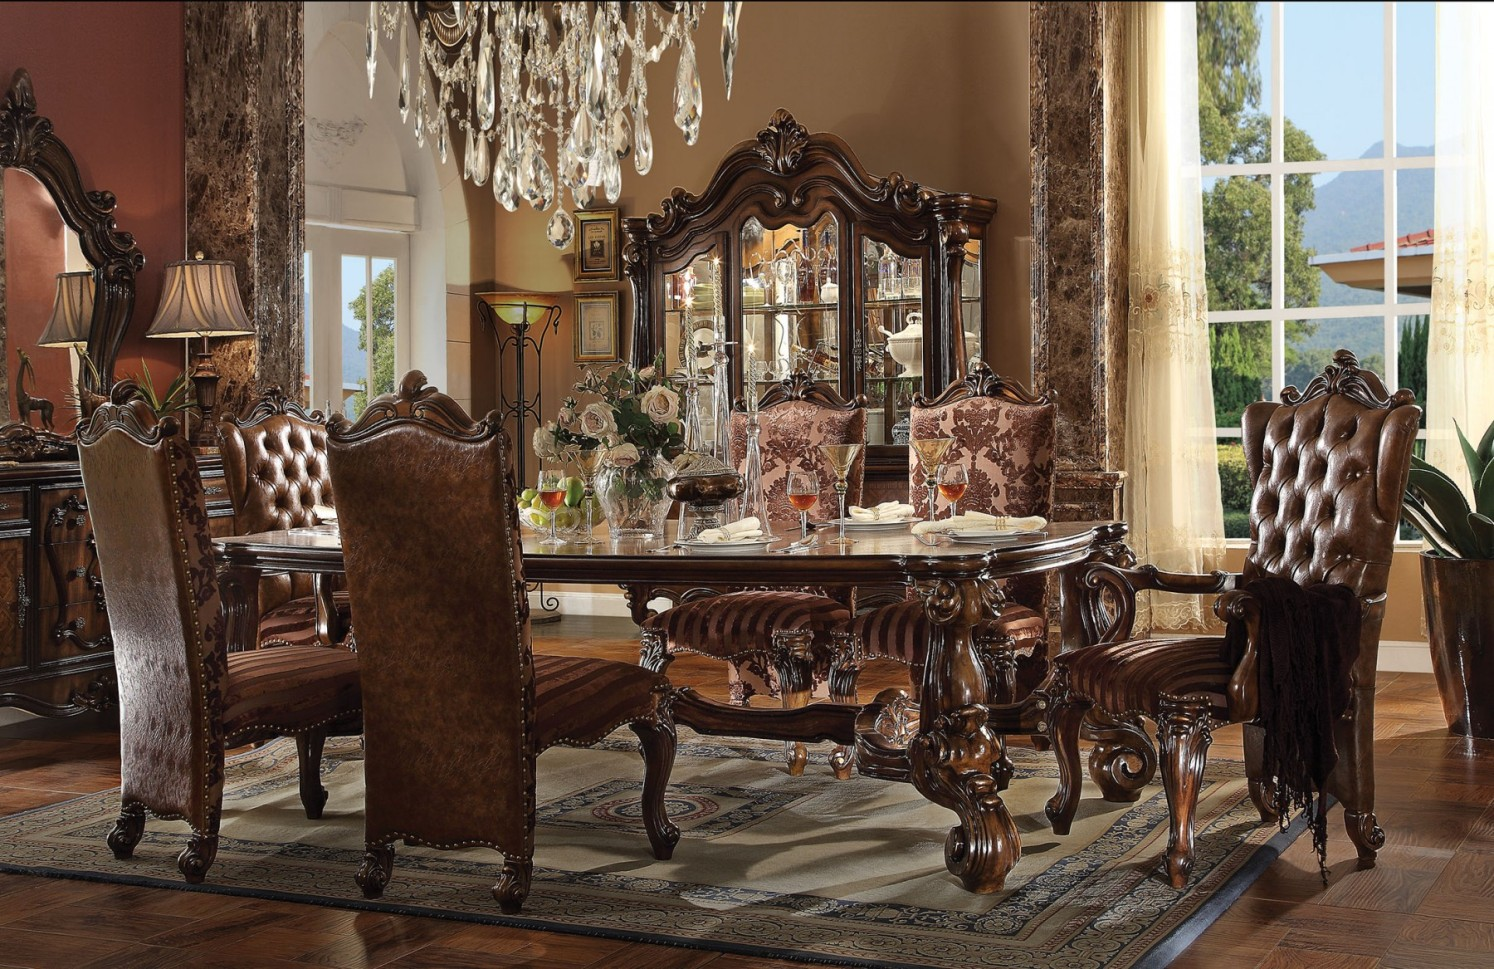 Formal dining room sets how elegance is made possible for The room furniture